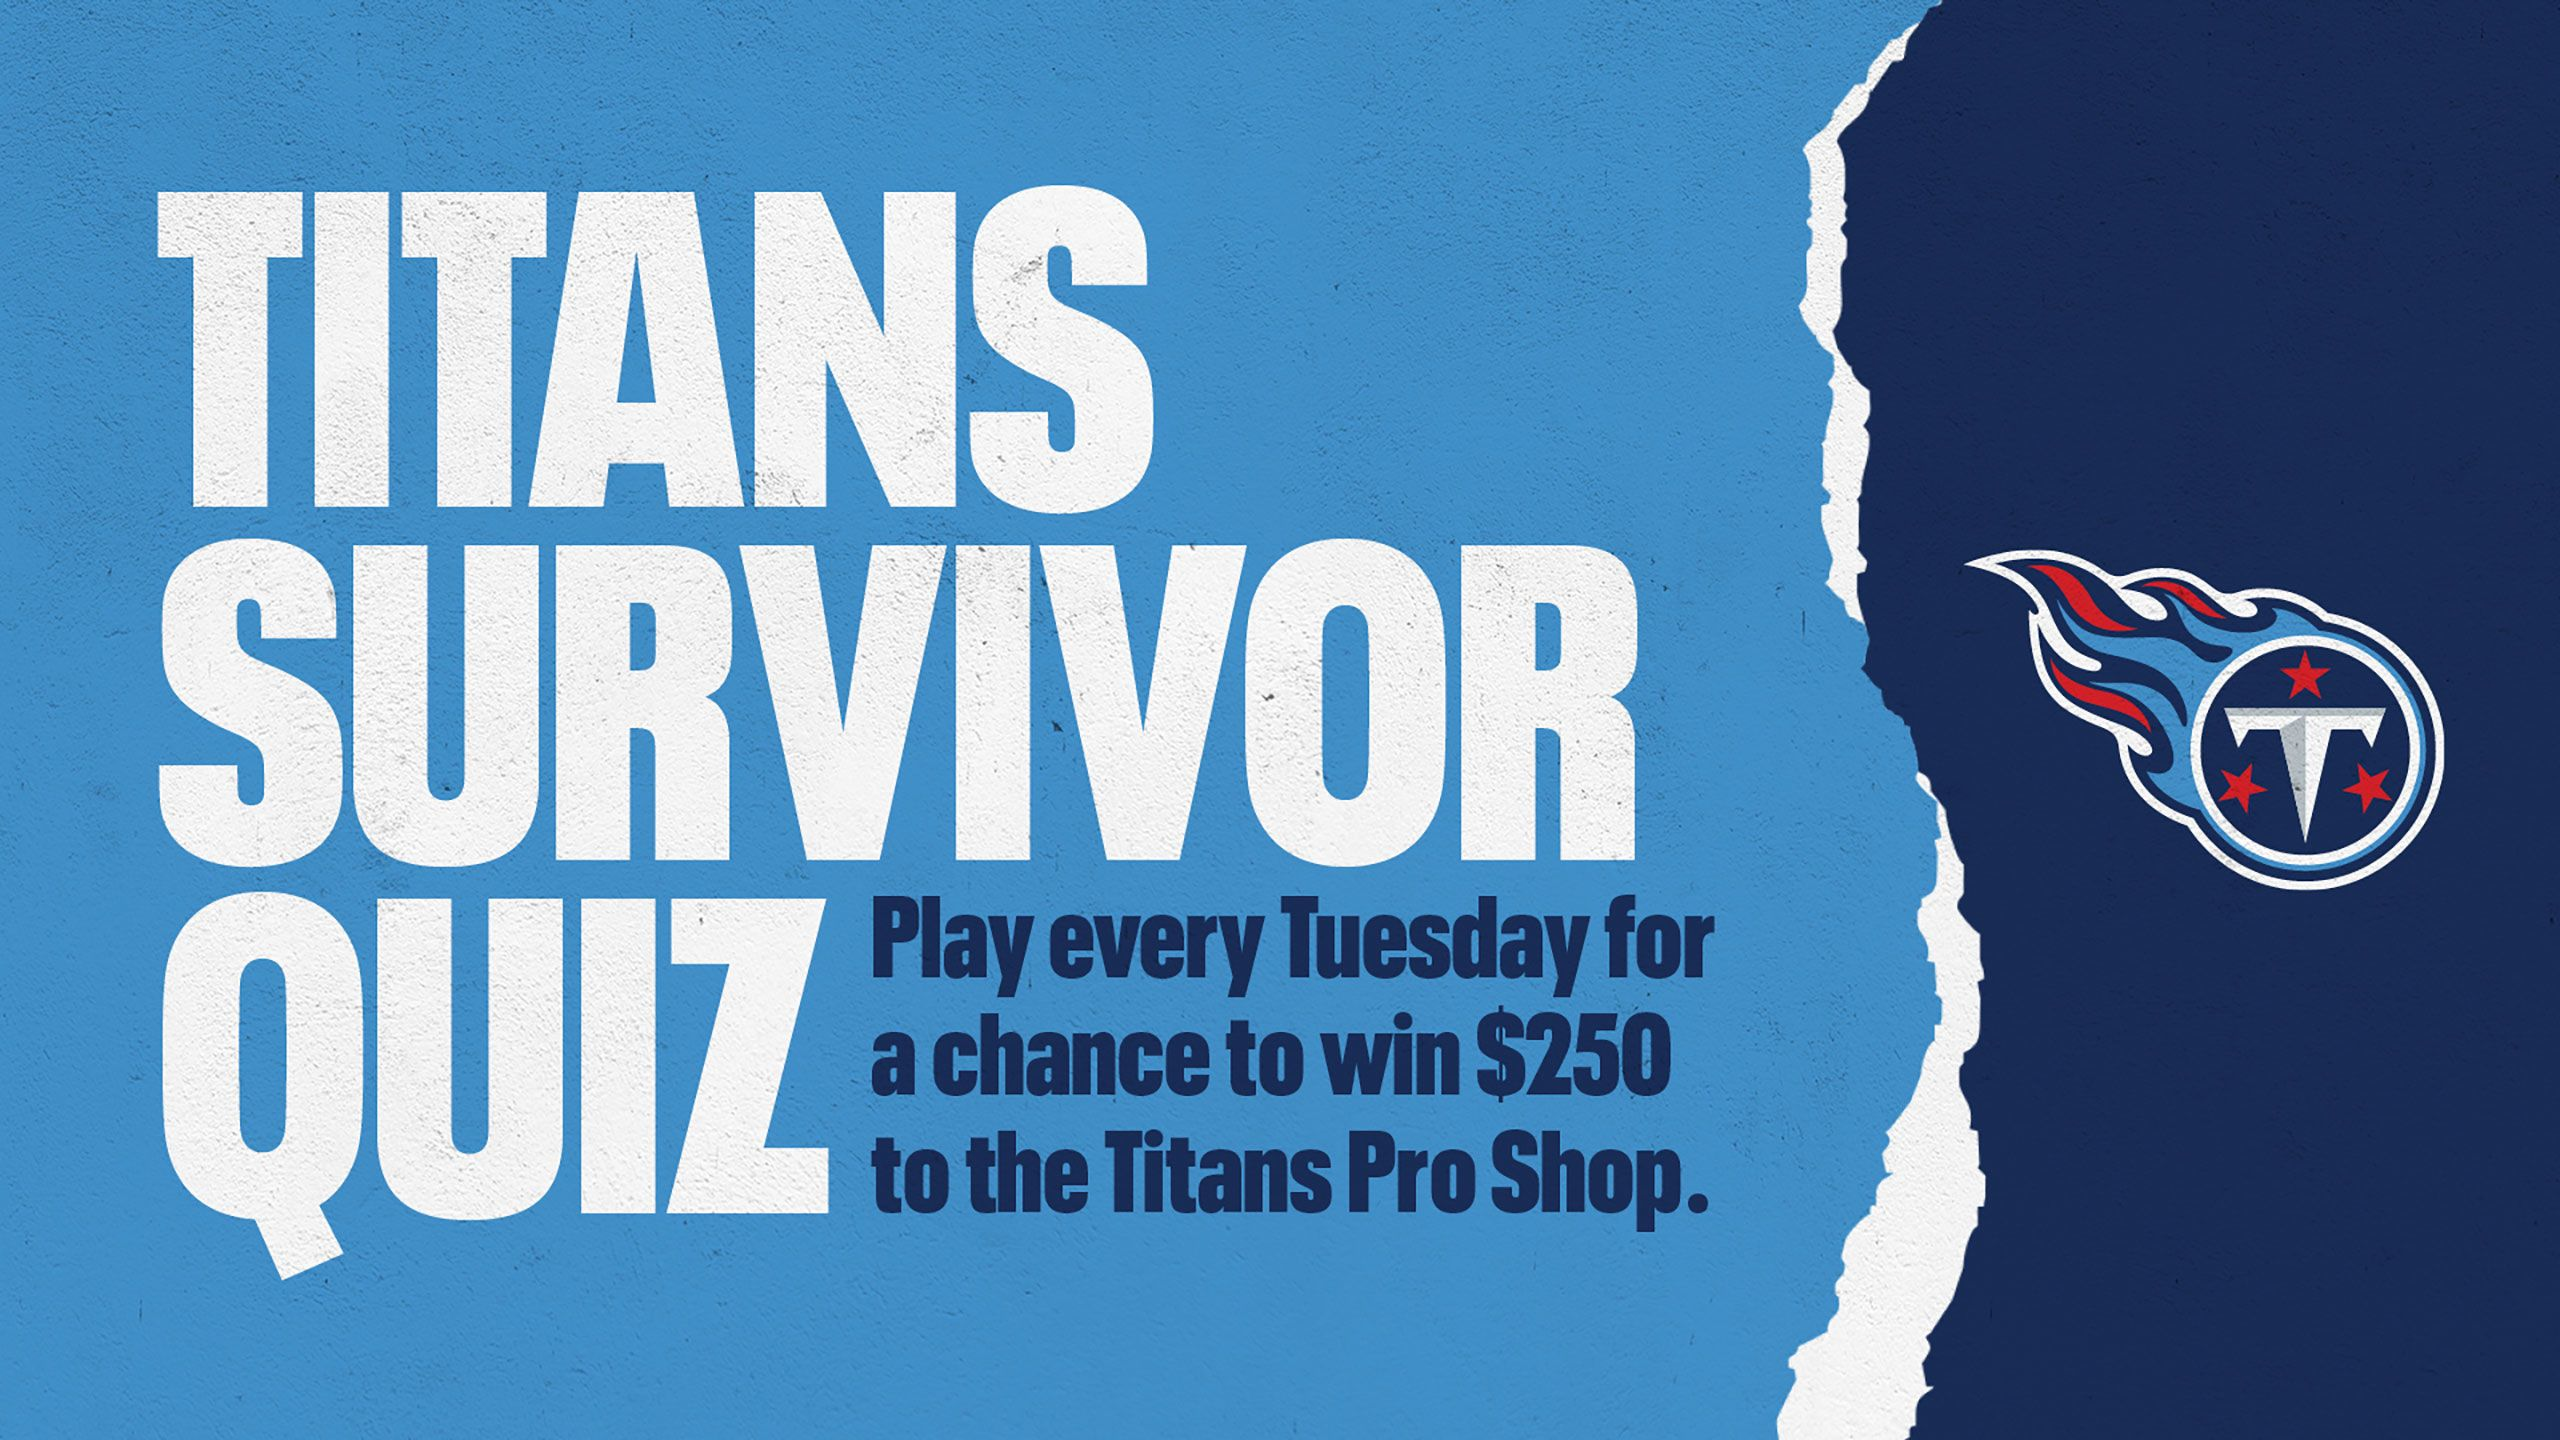 Titans Survivor Quiz